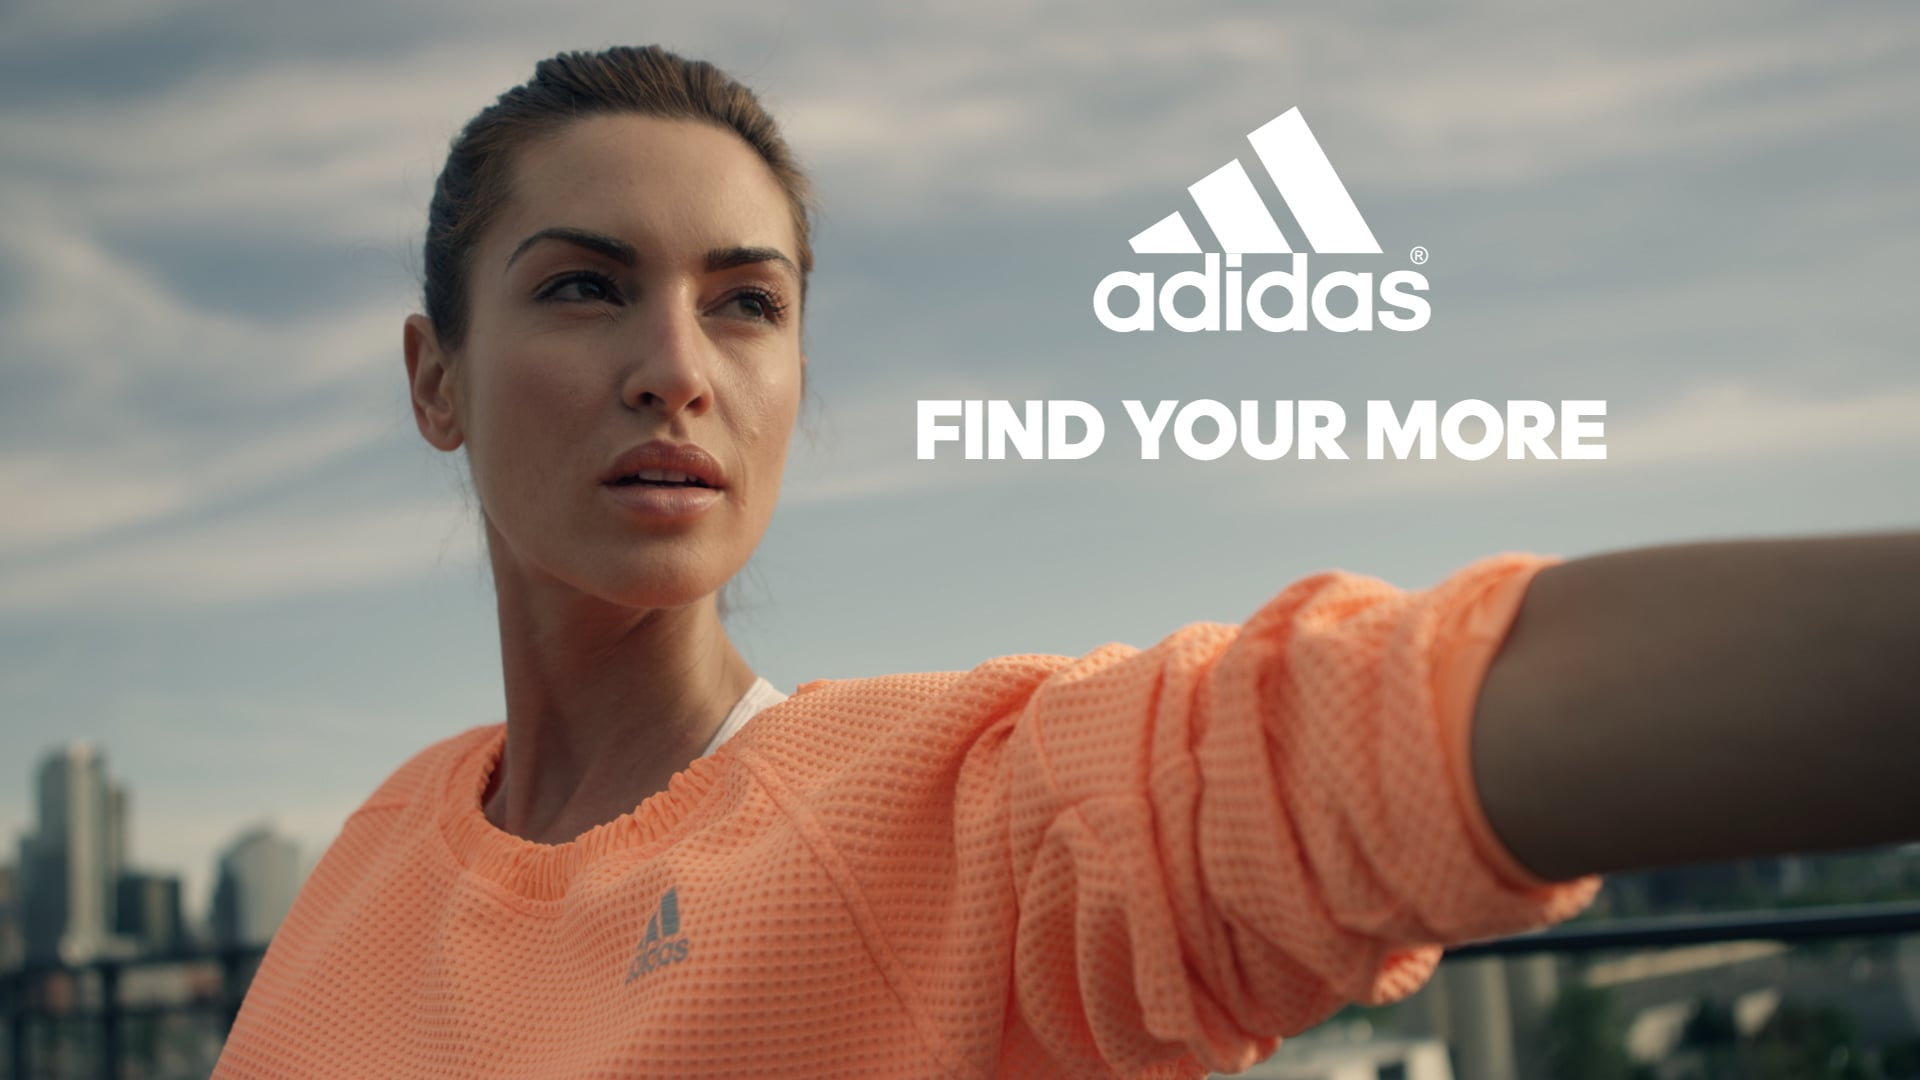 Adidas - Find Your More (Promo Video)